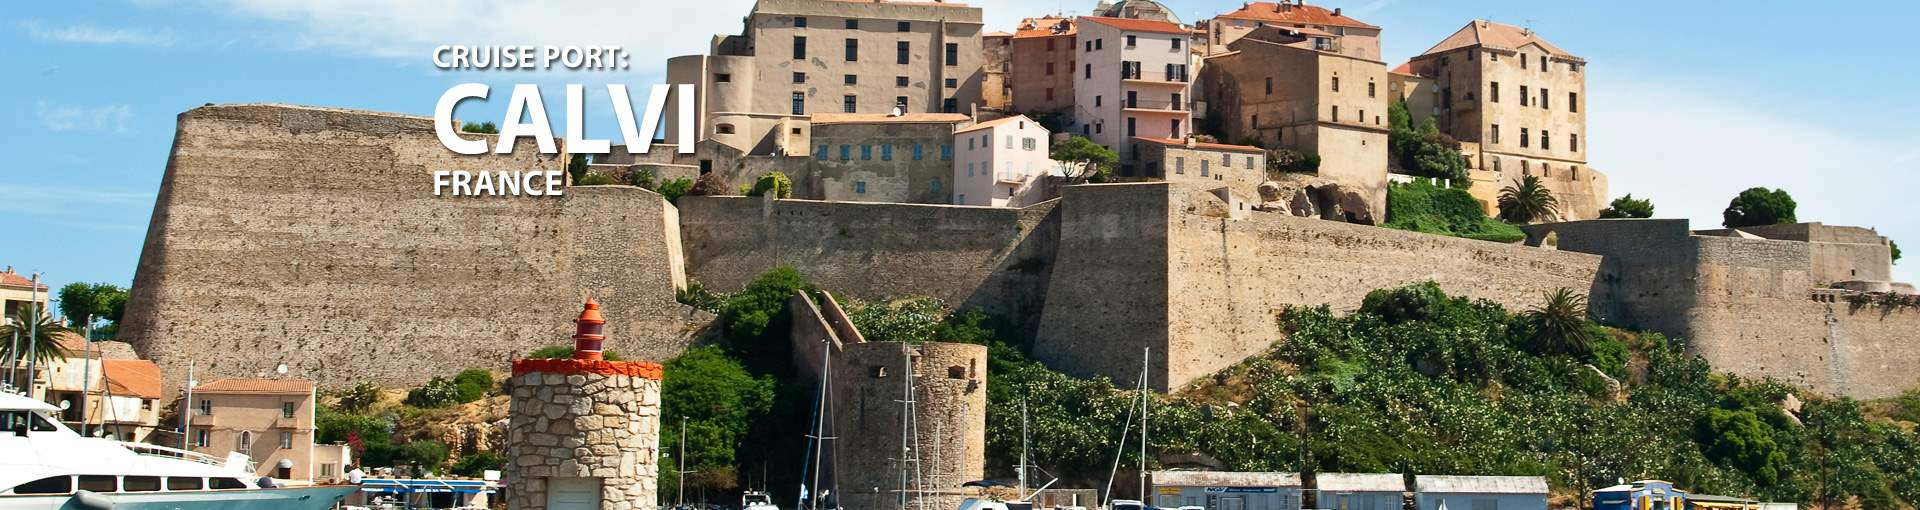 Cruises to Calvi, France